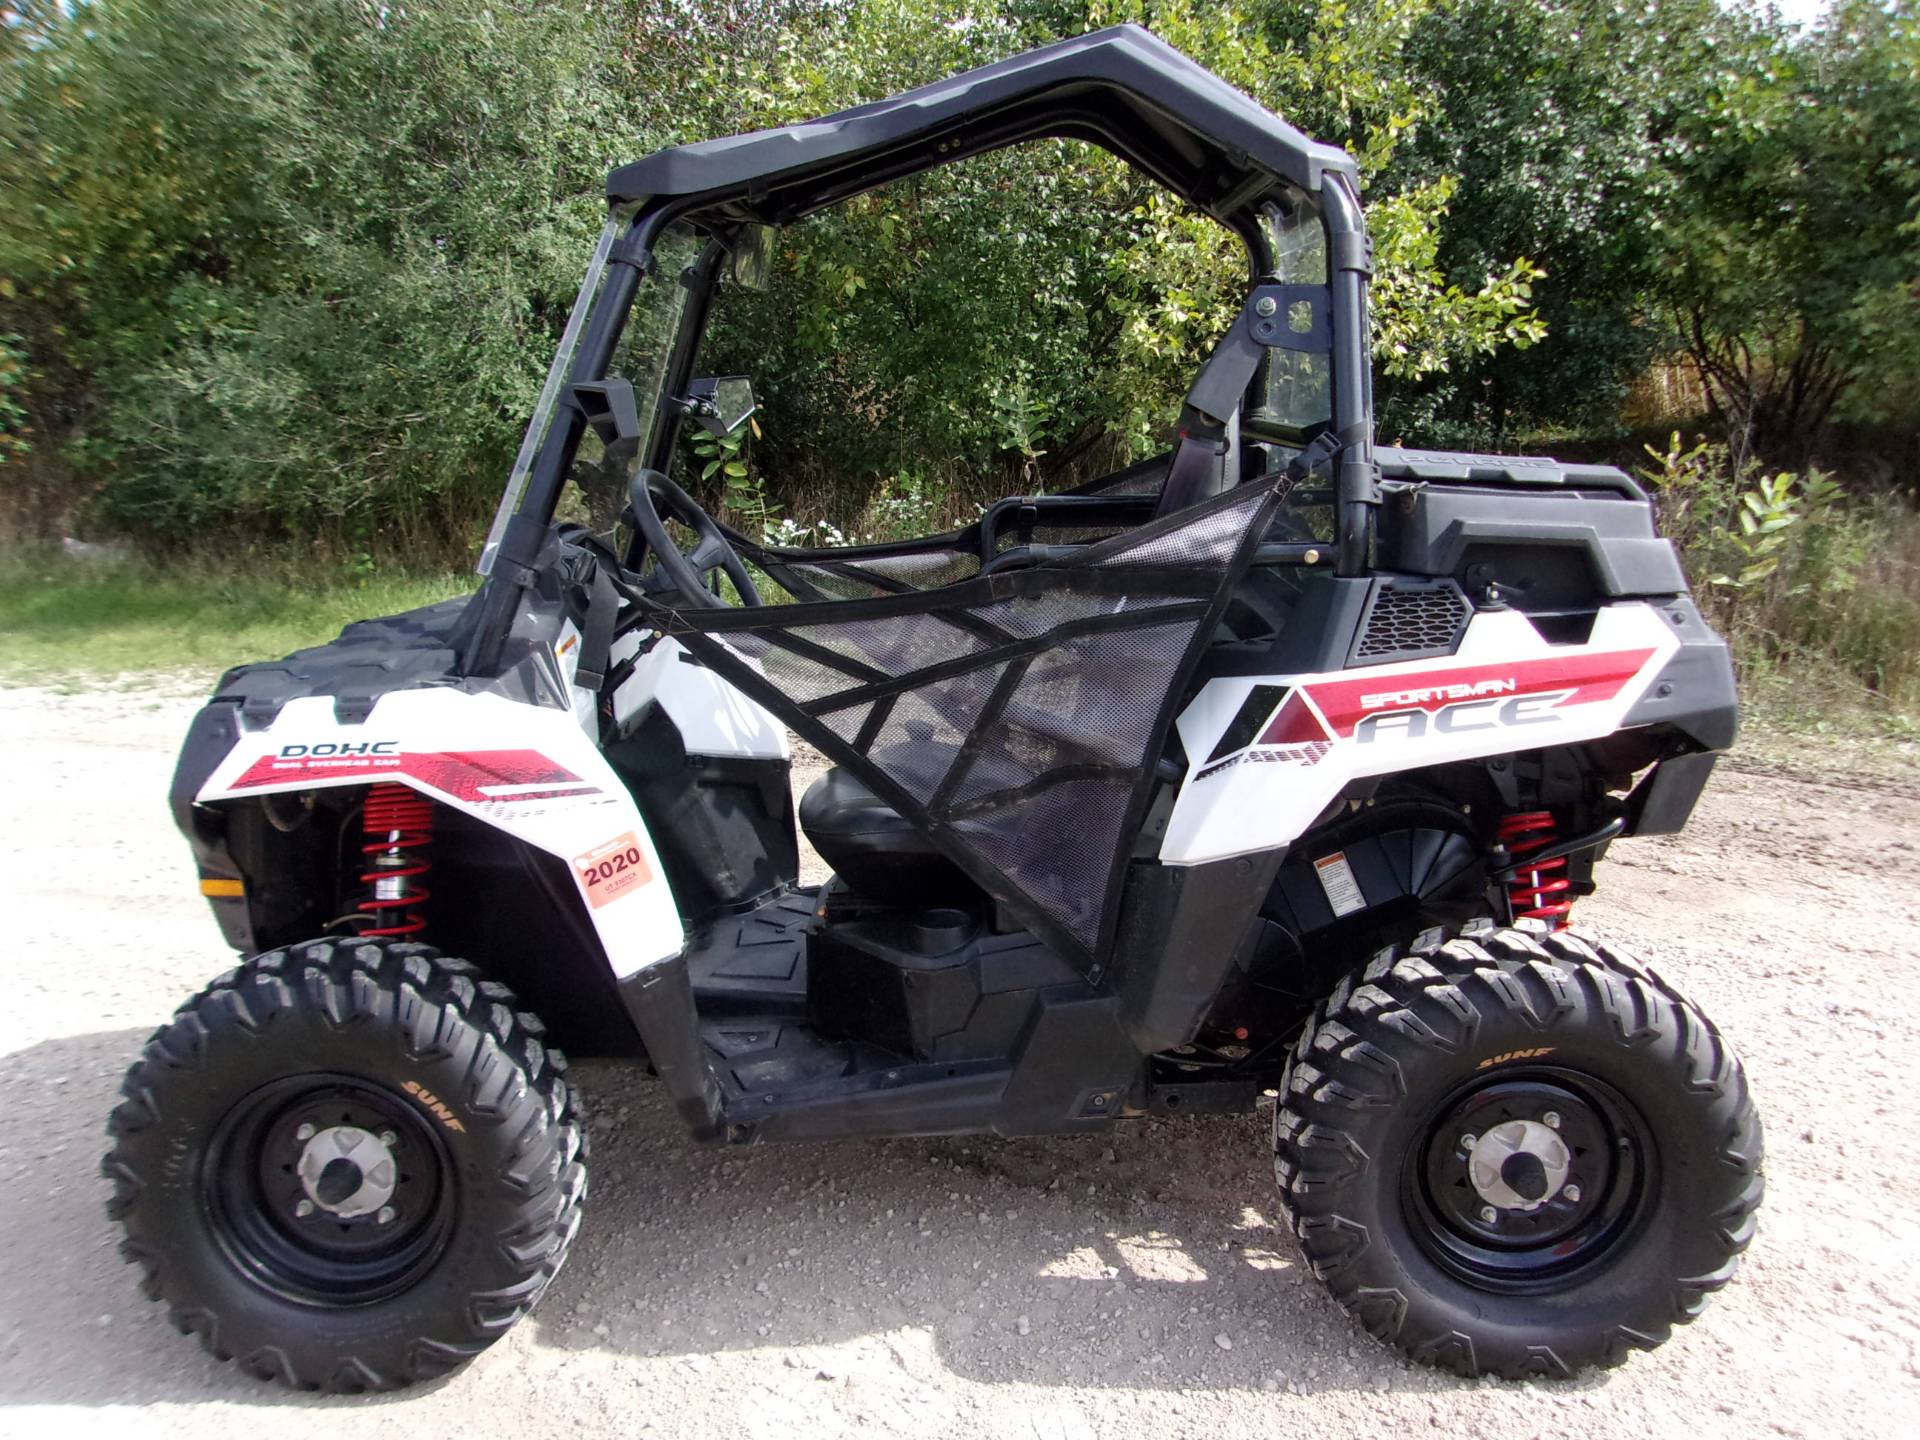 2014 Polaris Sportsman® Ace™ in Mukwonago, Wisconsin - Photo 1